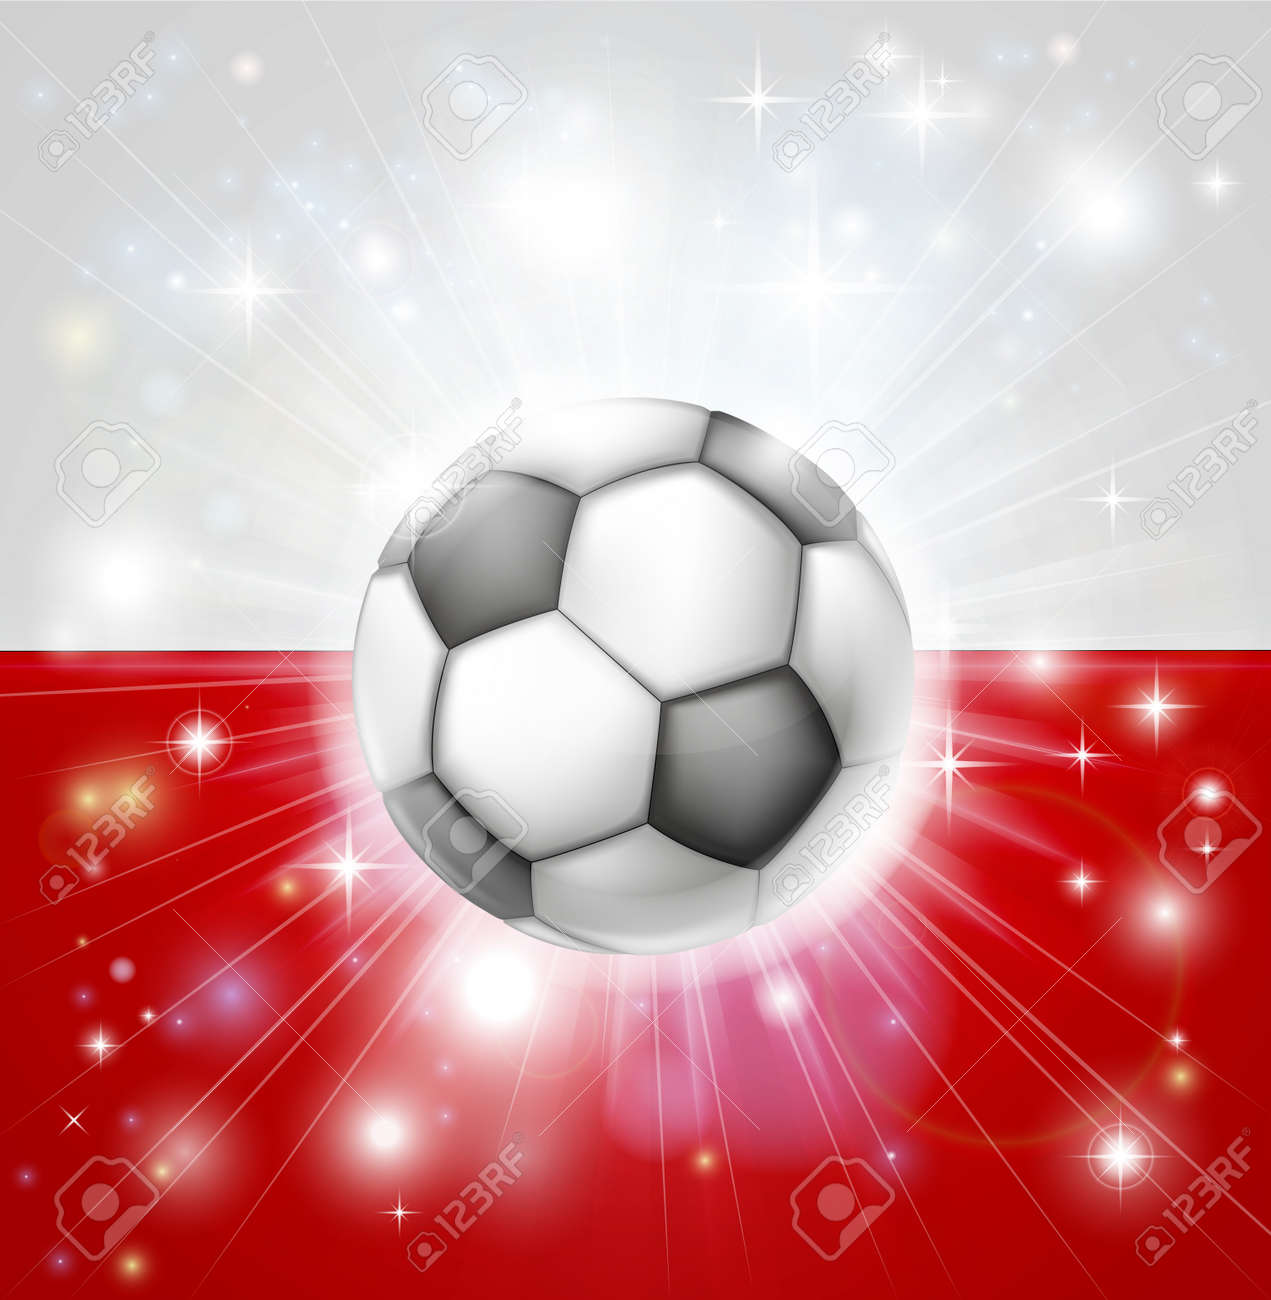 flag of poland soccer background with pyrotechnic or light burst